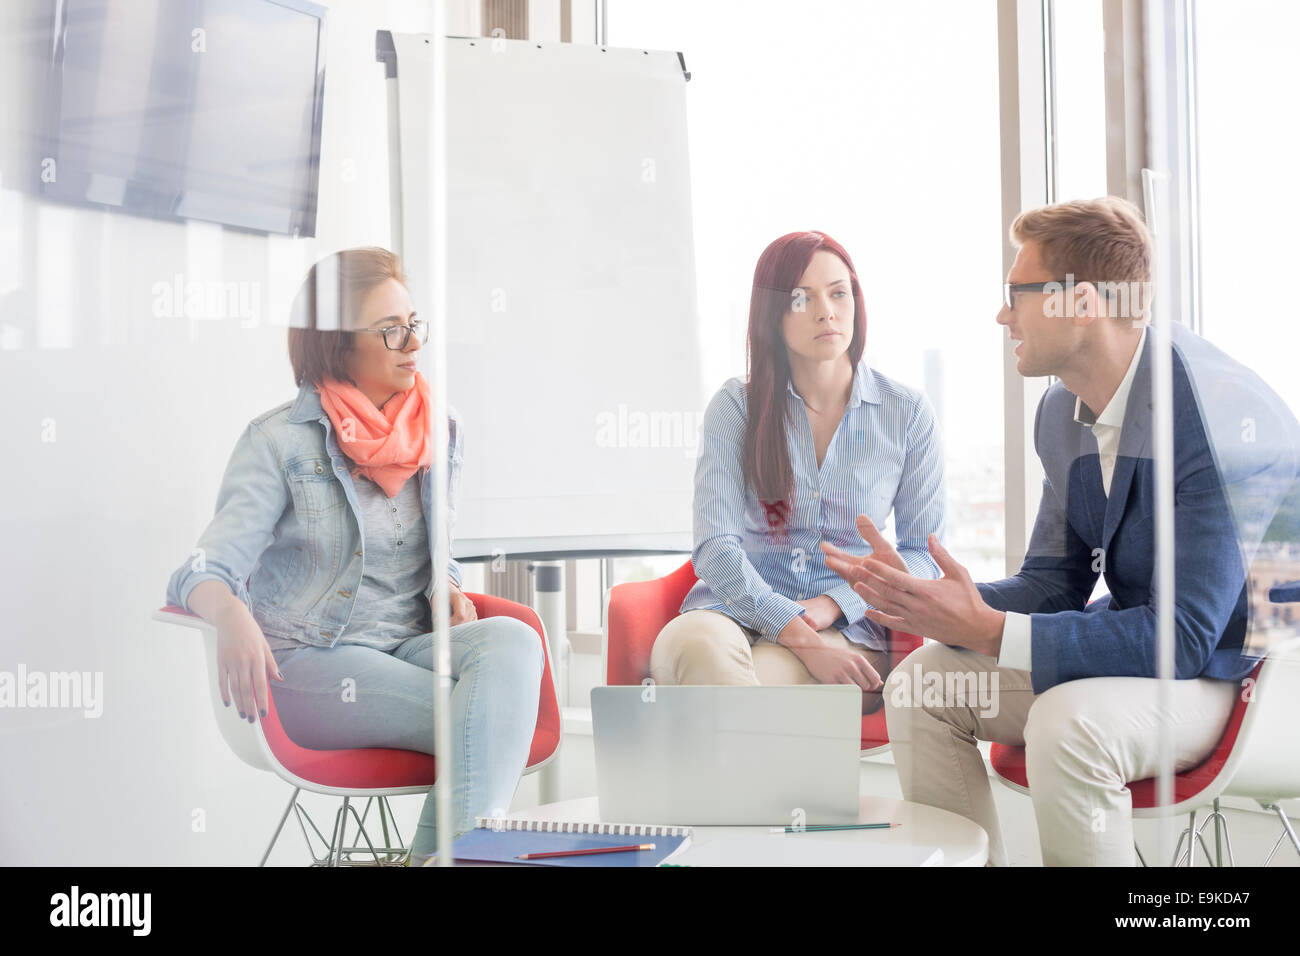 Business people discussing in meeting room Stock Photo